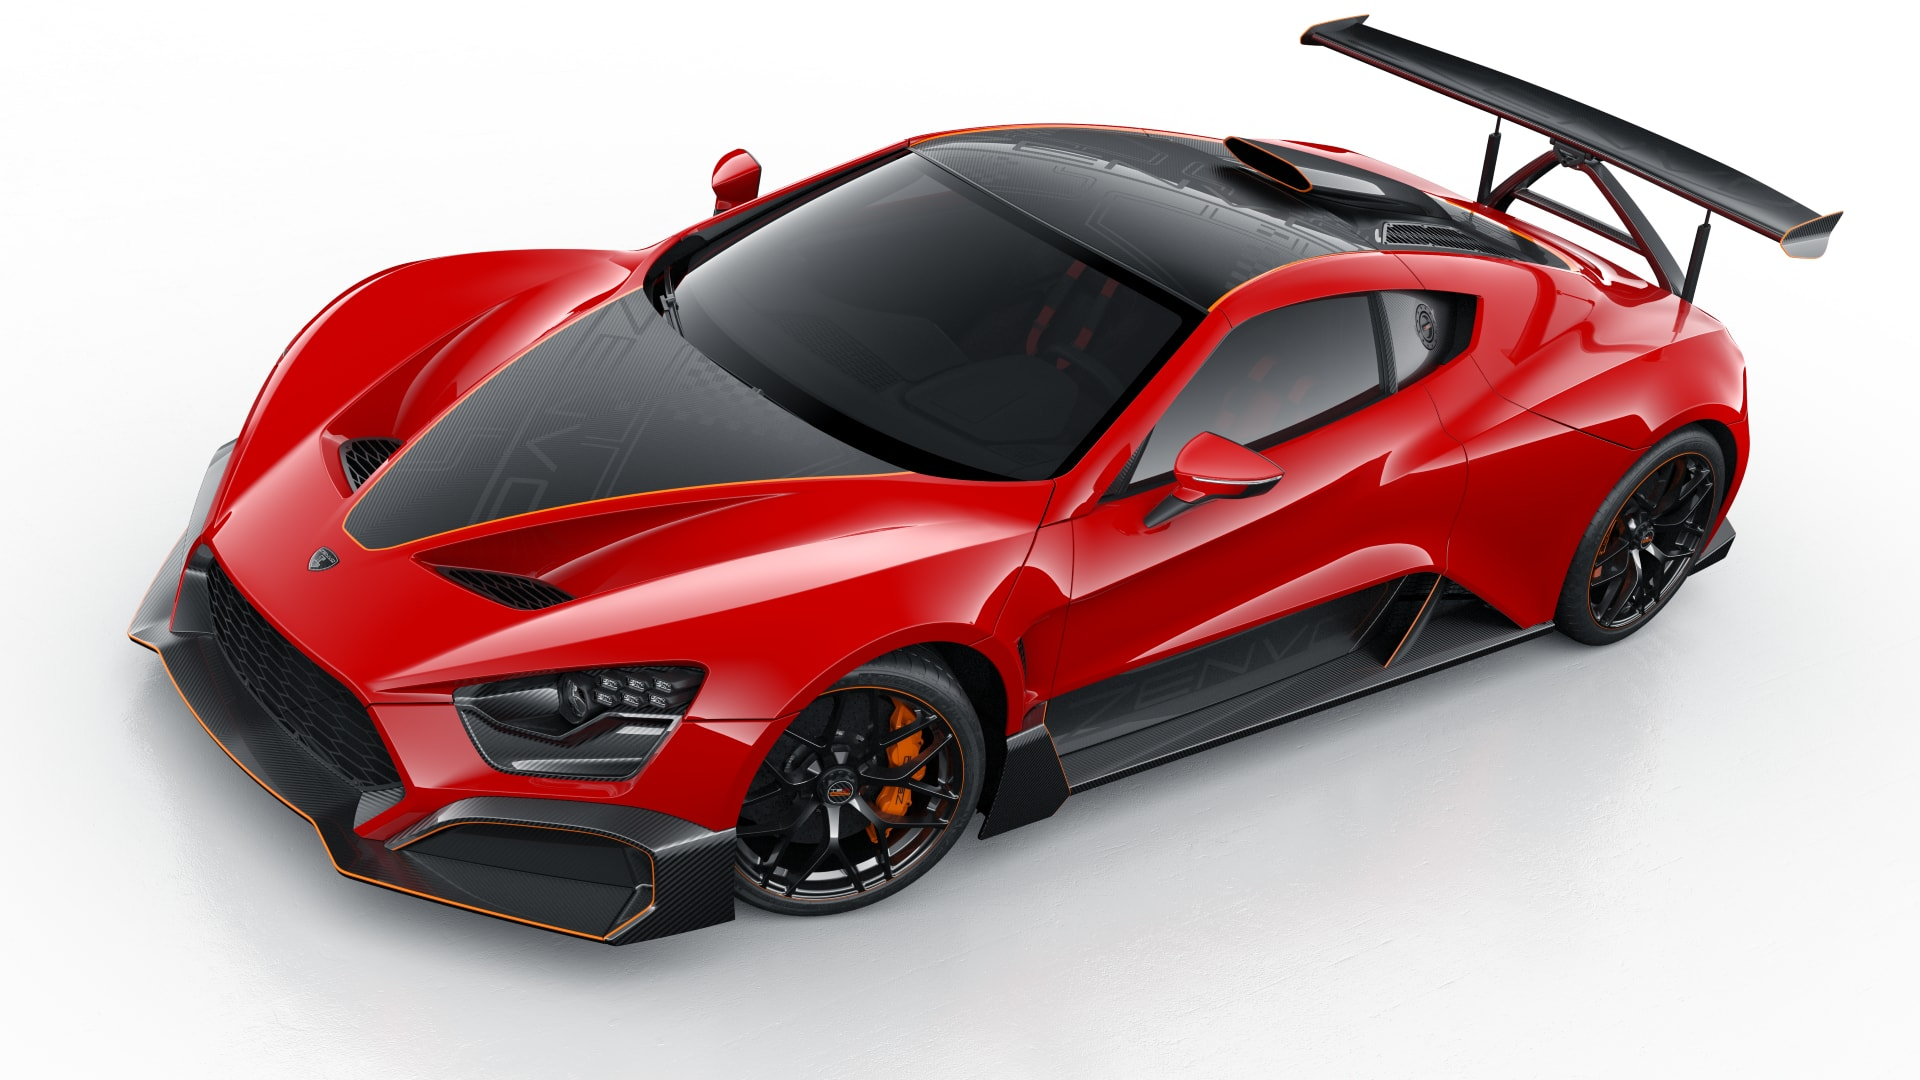 Zenvo presents the world debut of the Zenvo TSR-S